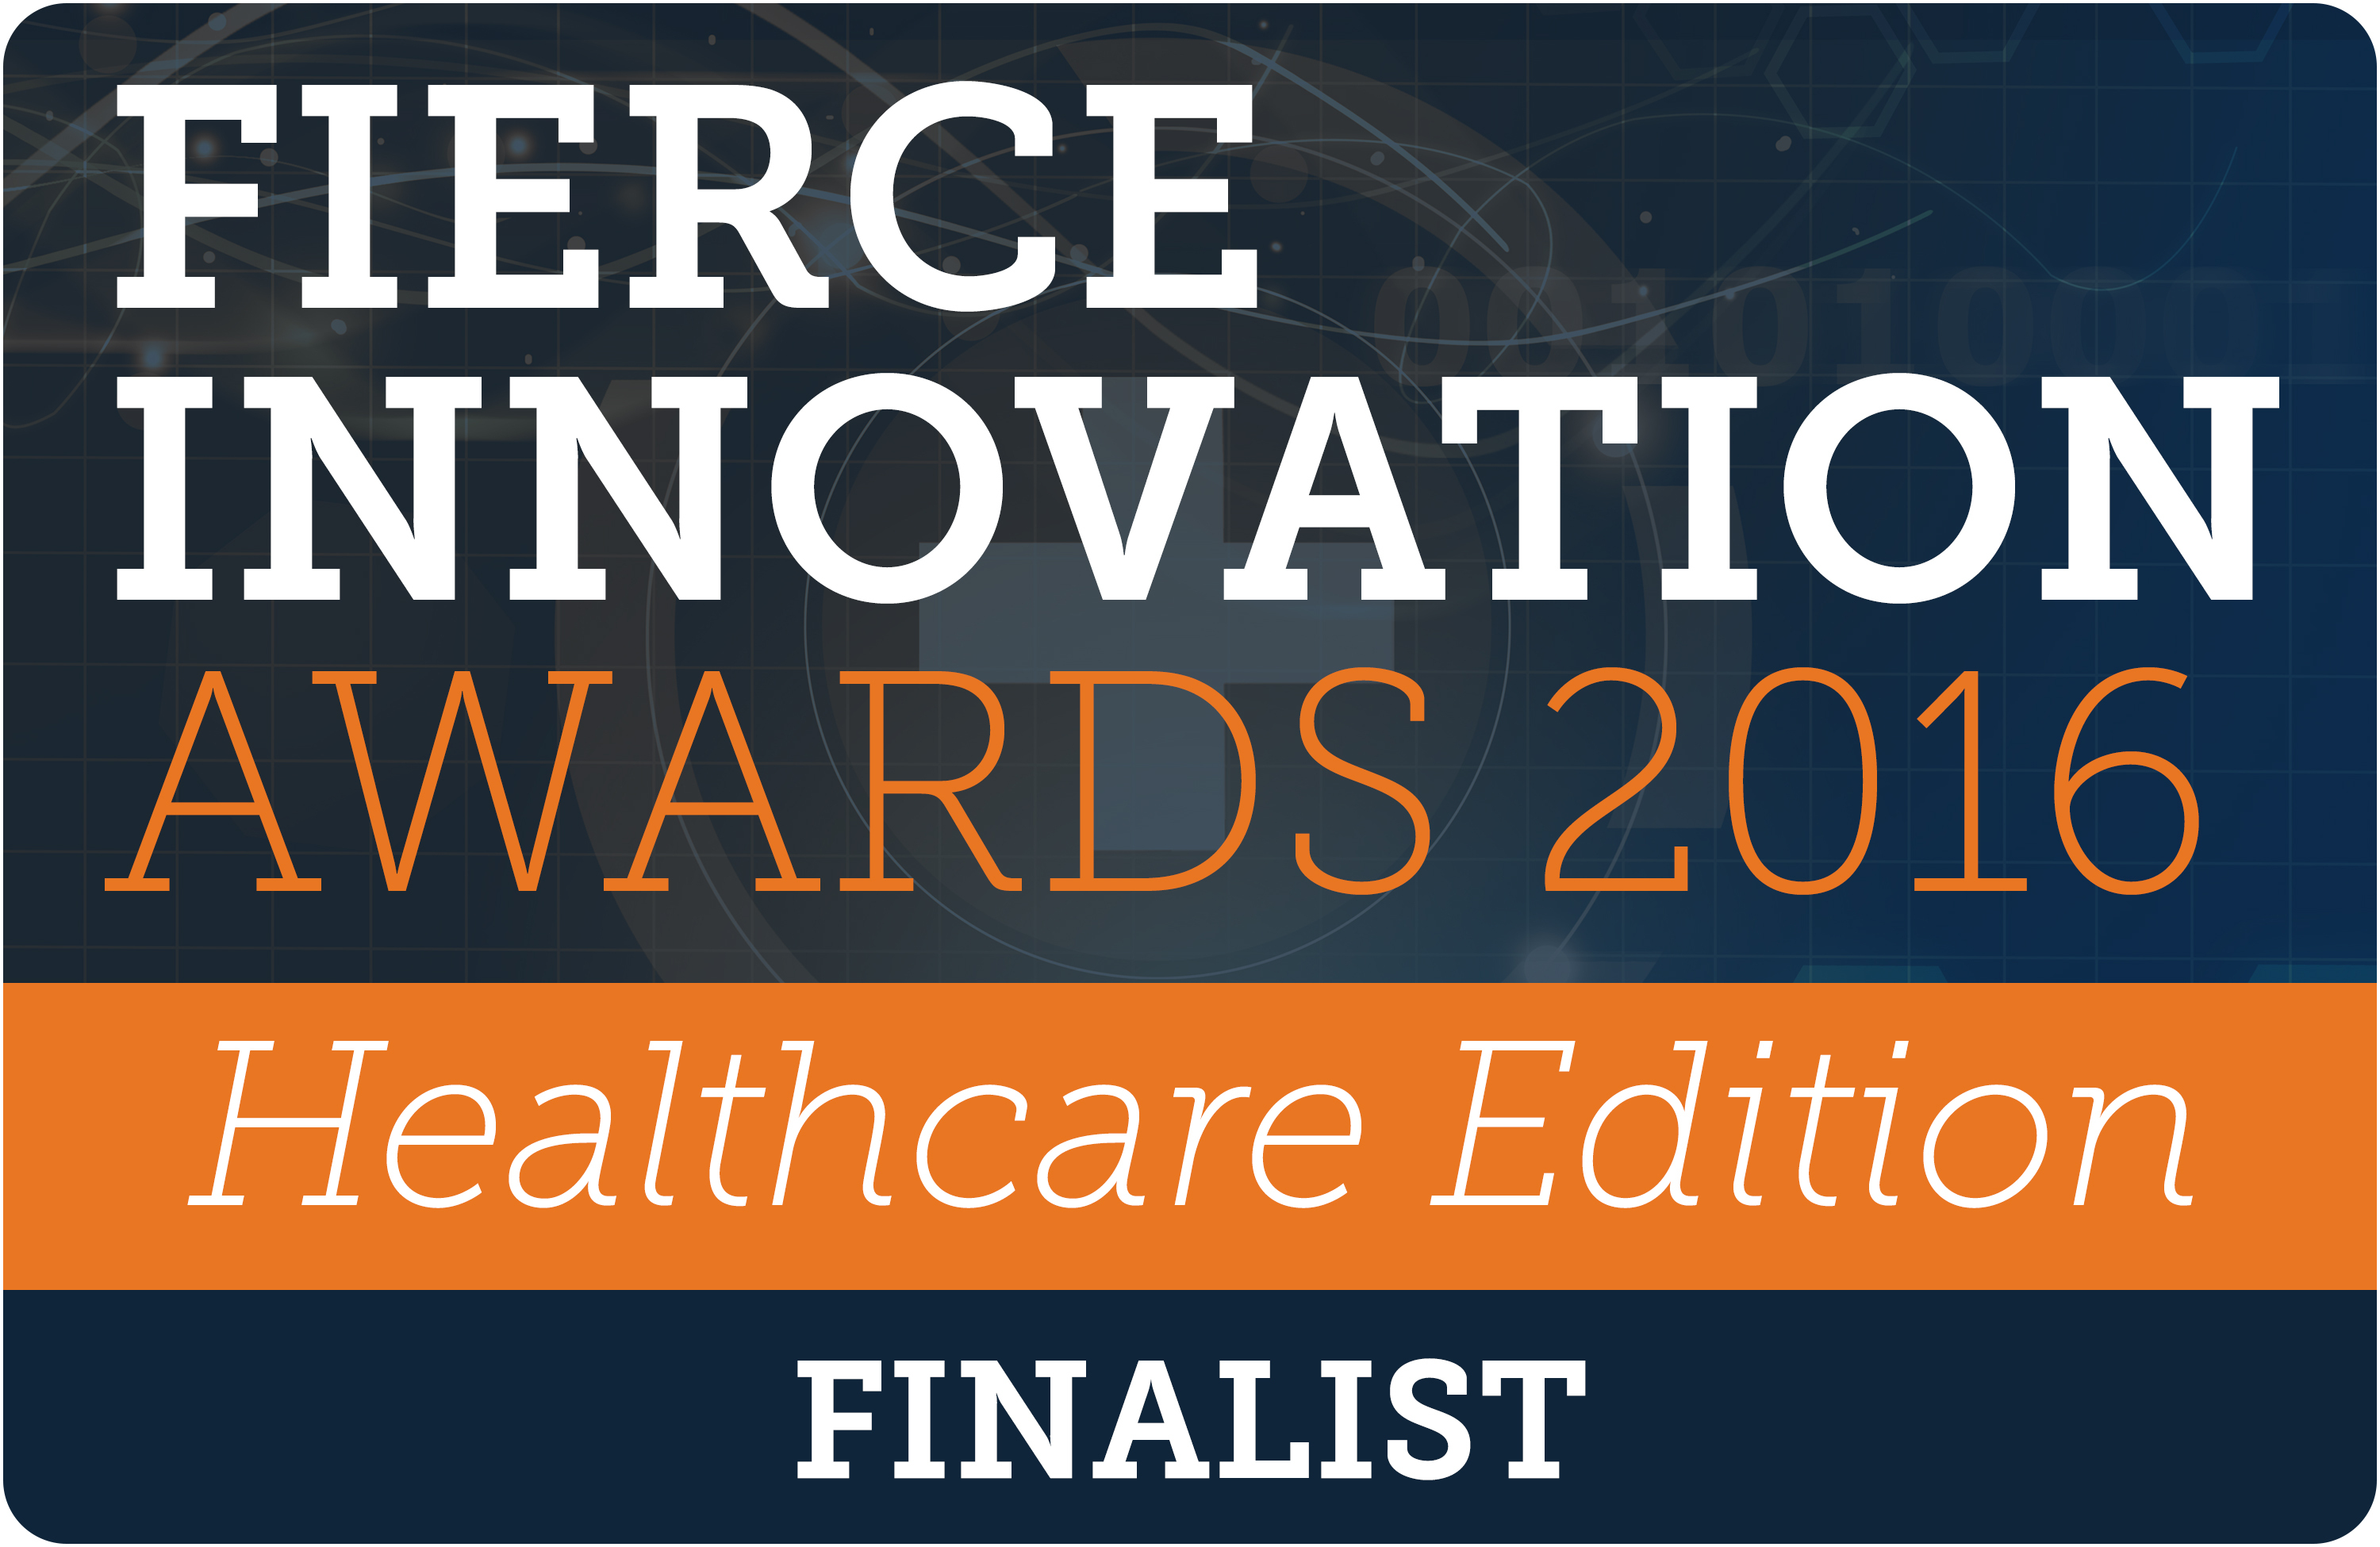 """Glytec is proud to be named a Fierce Innovation Awards finalist, Healthcare Edition. """"Our focus is on optimizing diabetes care across the continuum, whether patients are hospitalized or at home,"""" says Glytec's Chief Medical Officer, Andrew S. Rhinehart, MD, FACP, FACE, CDE, BC-ADM, CDTC. """"This is especially important as the majority of health systems transition to risk- and value-based payment programs."""" (Graphic: Business Wire)"""